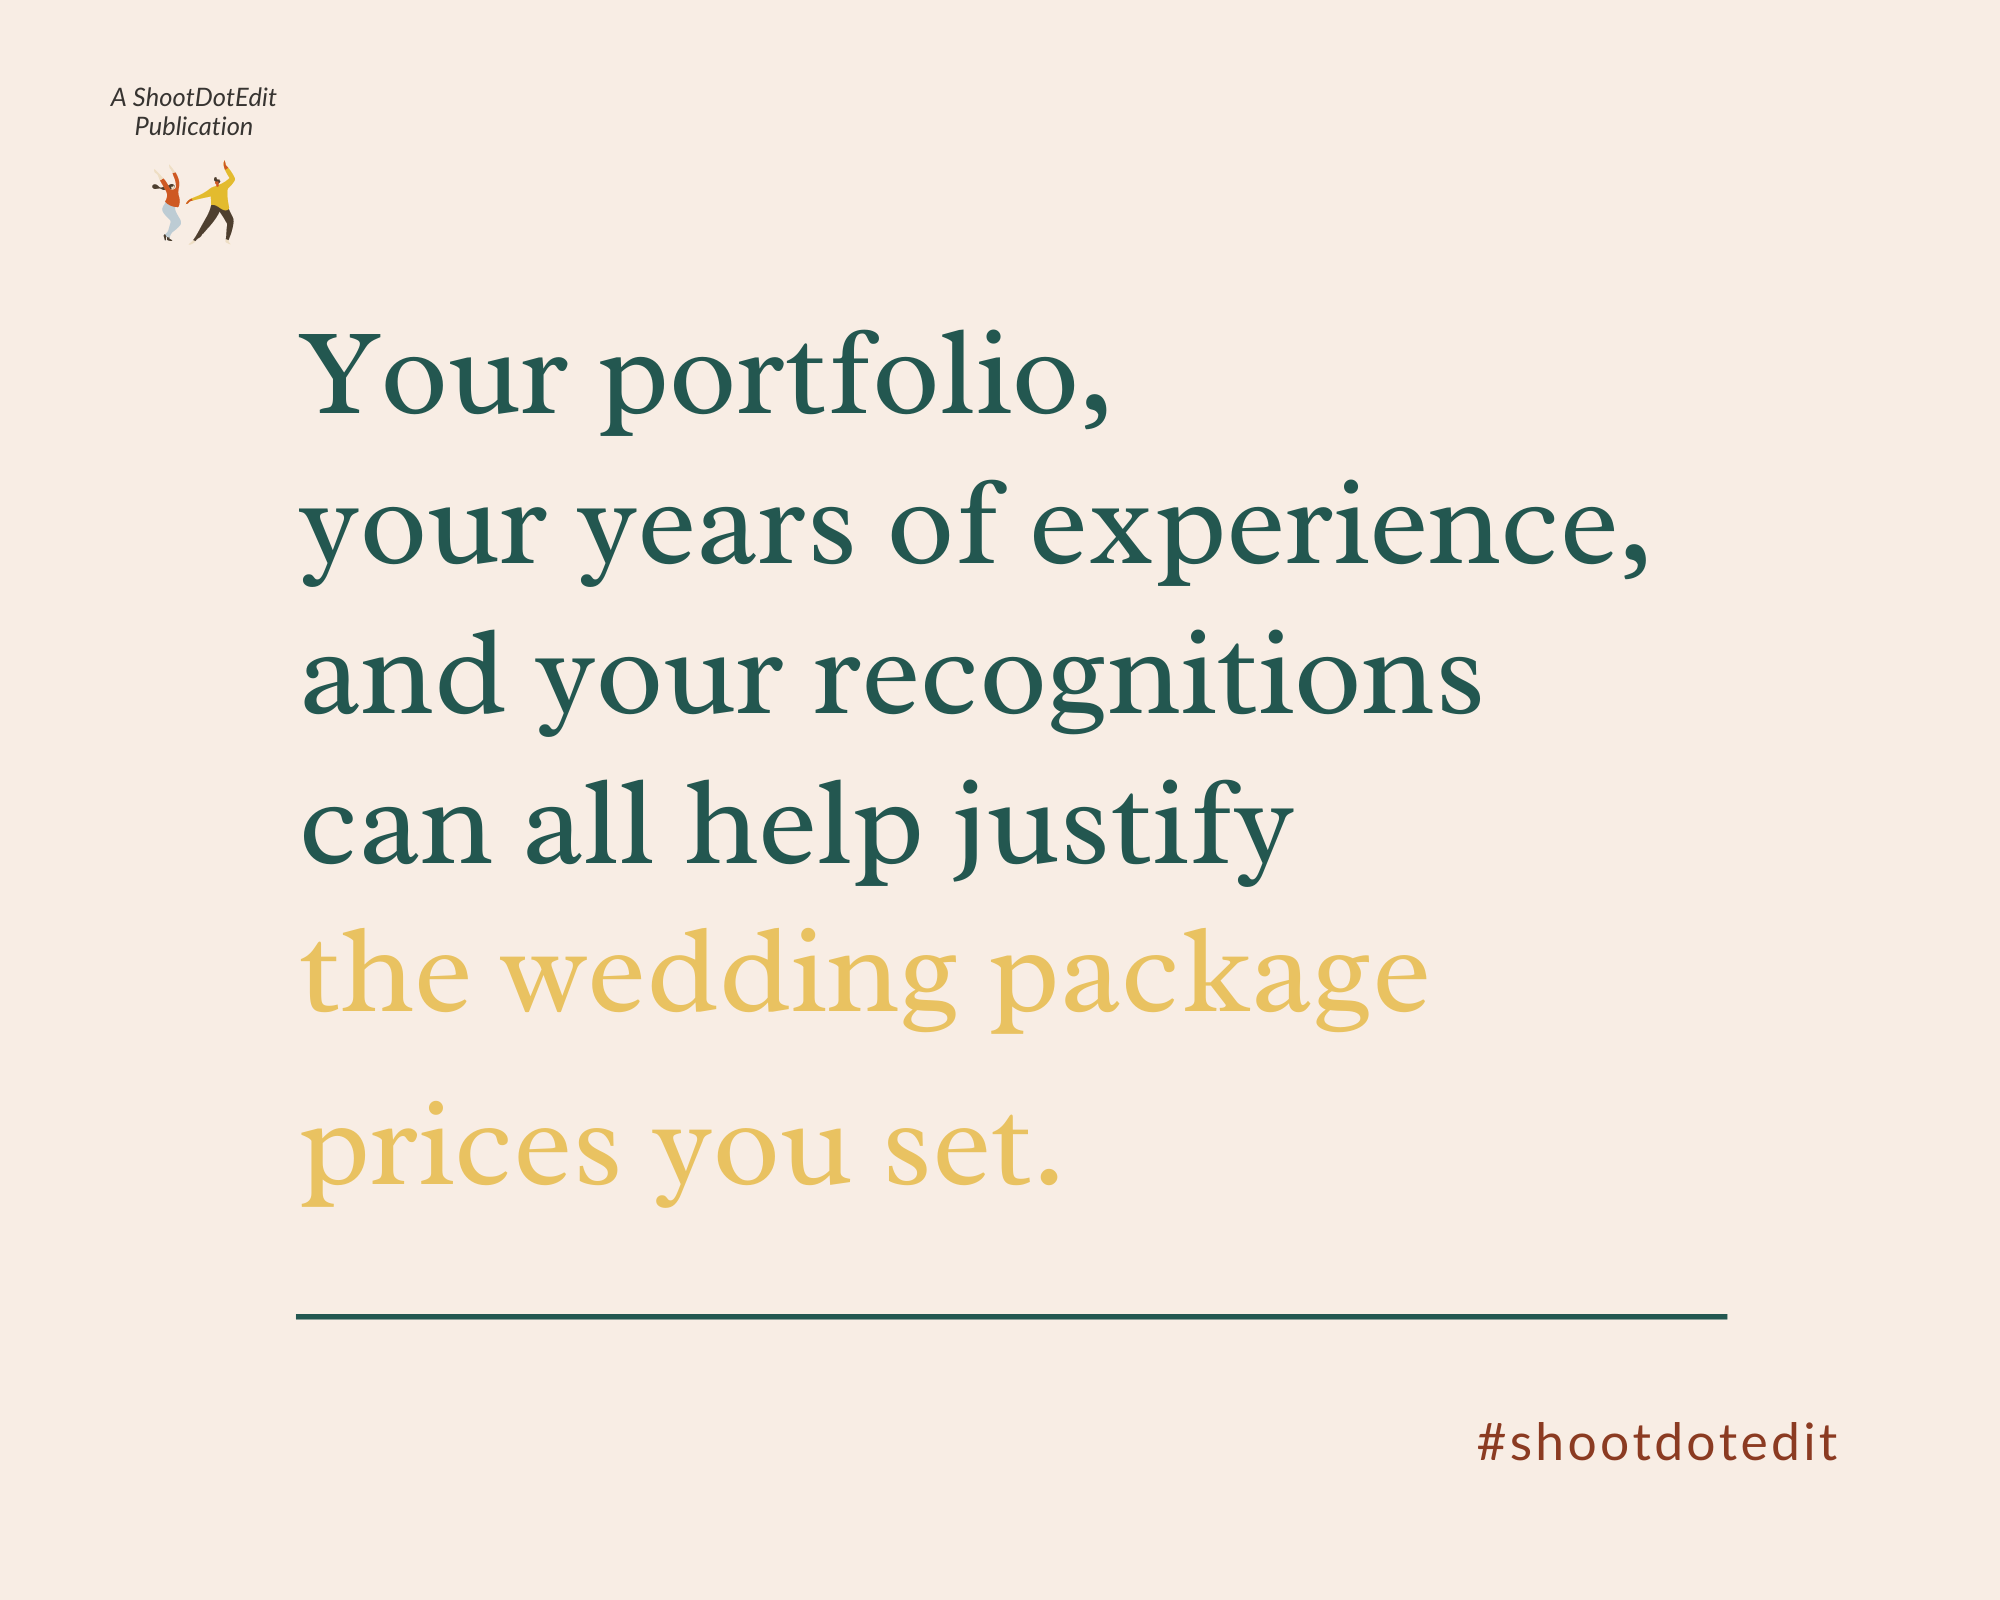 Your portfolio, your years of experience, & your recognitions can all help justify the wedding package prices you set.